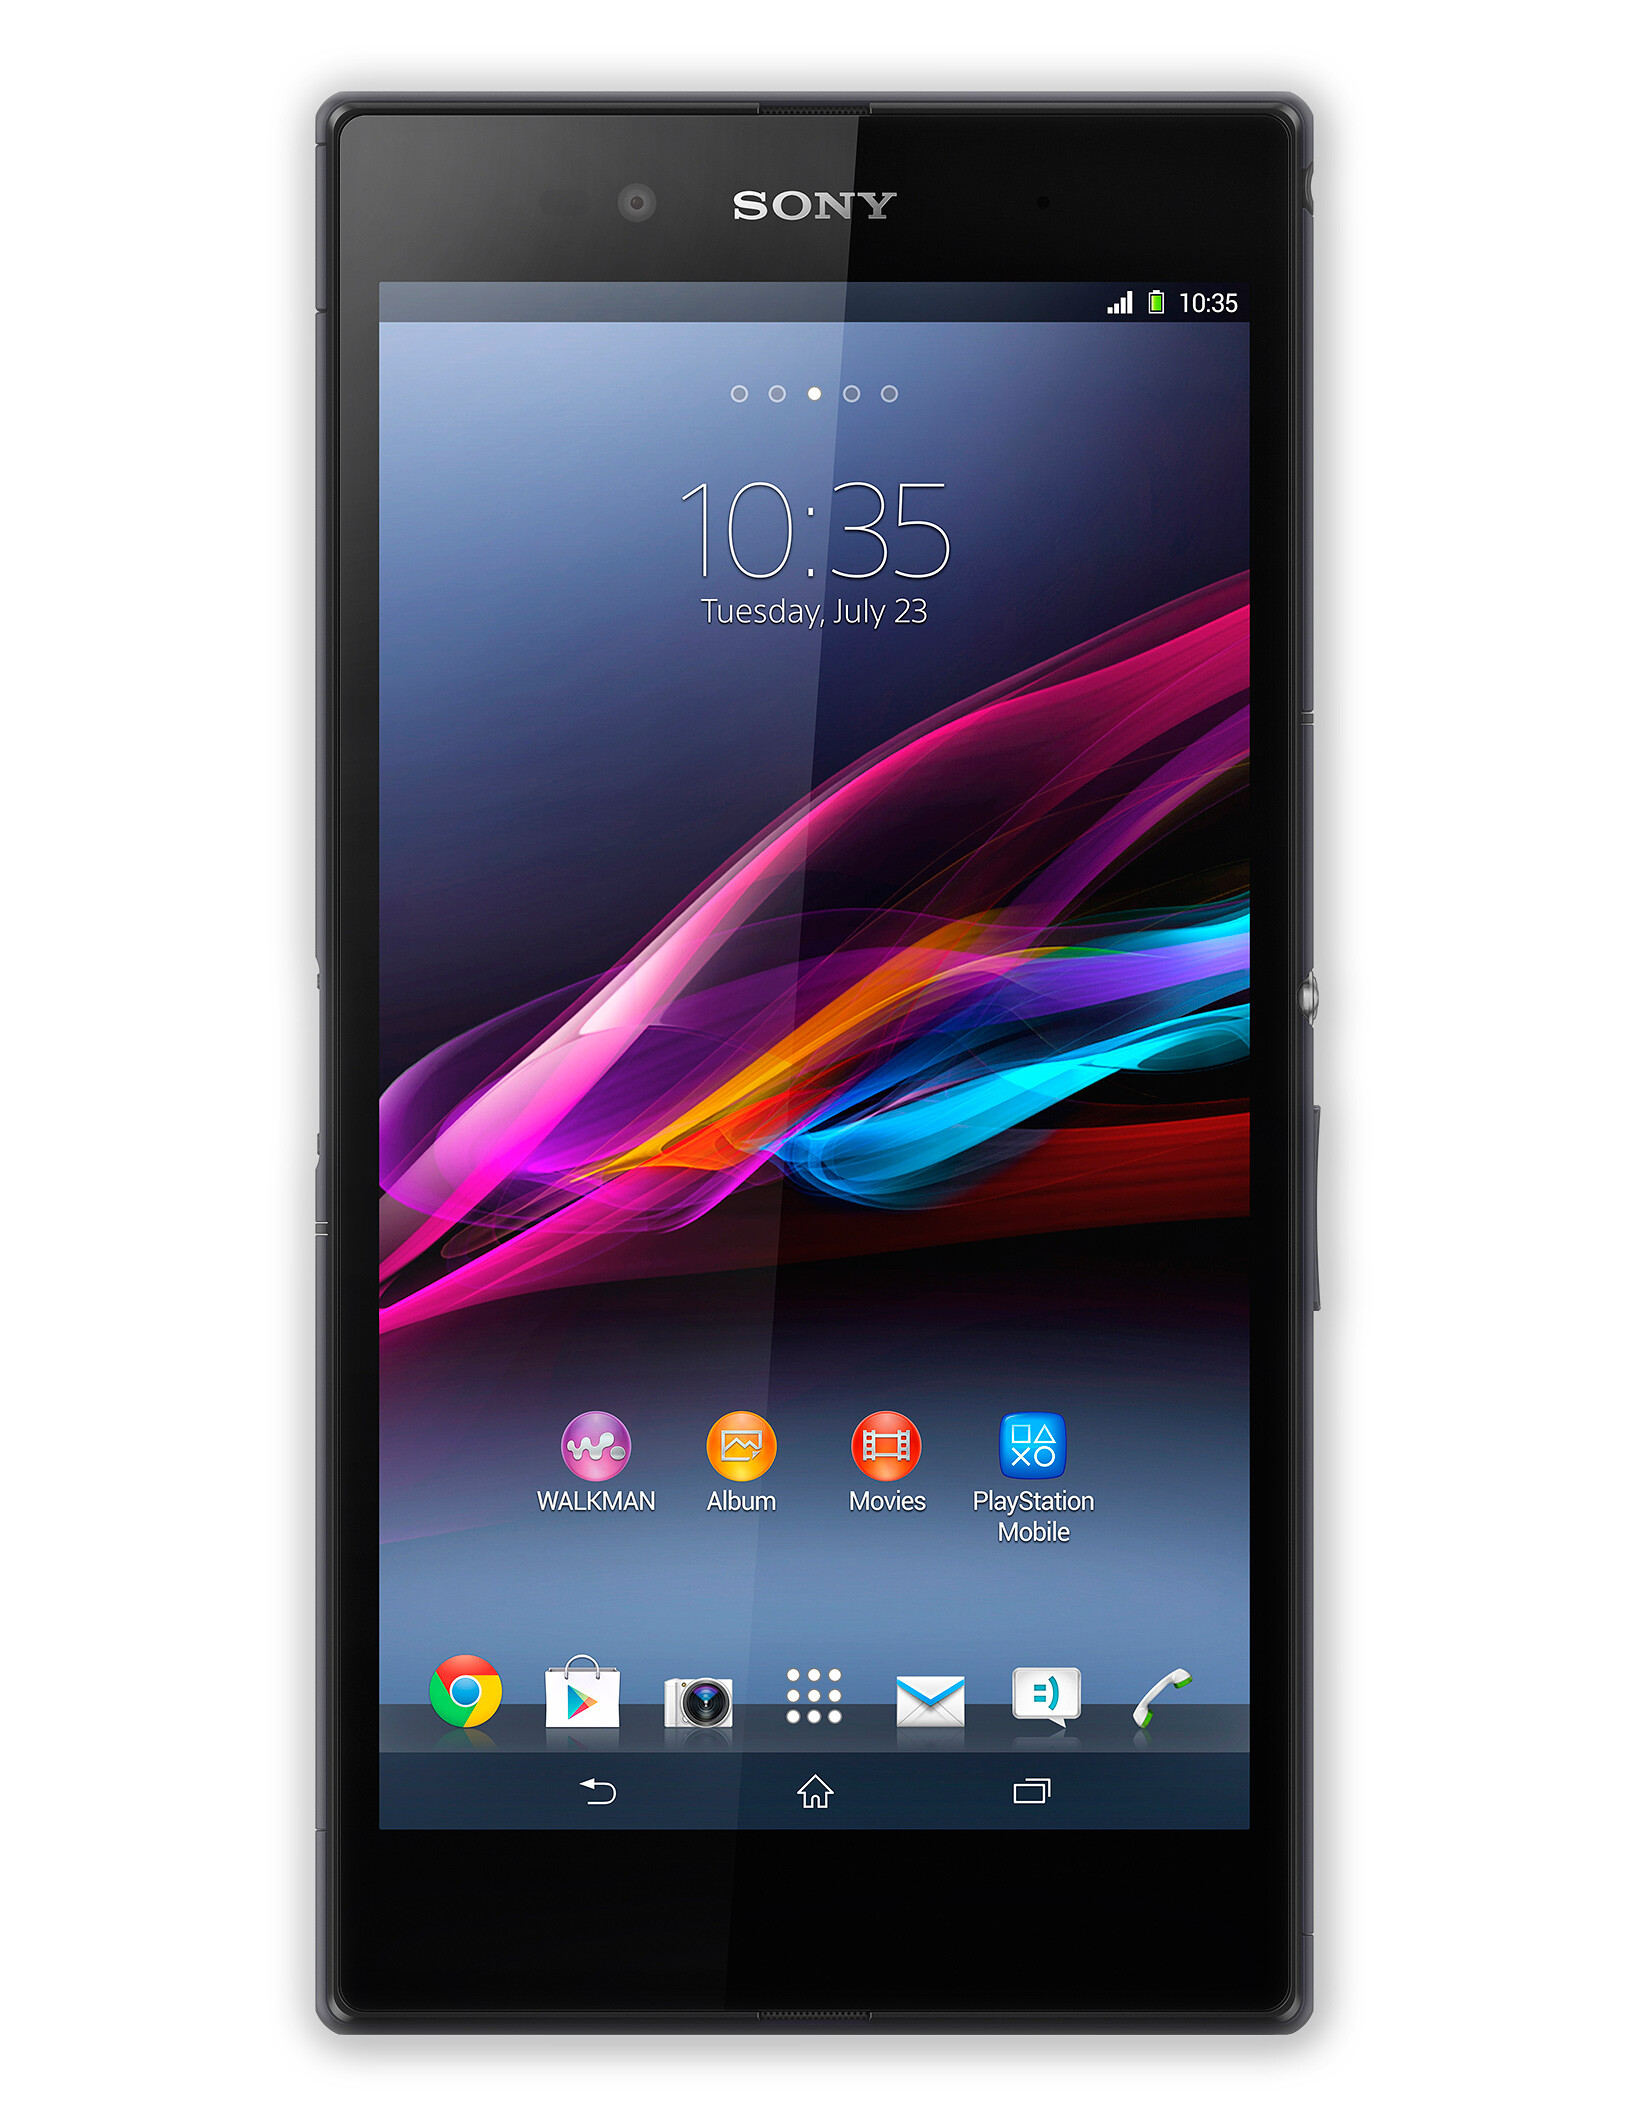 Sony xperia z ultra photos ccuart Image collections